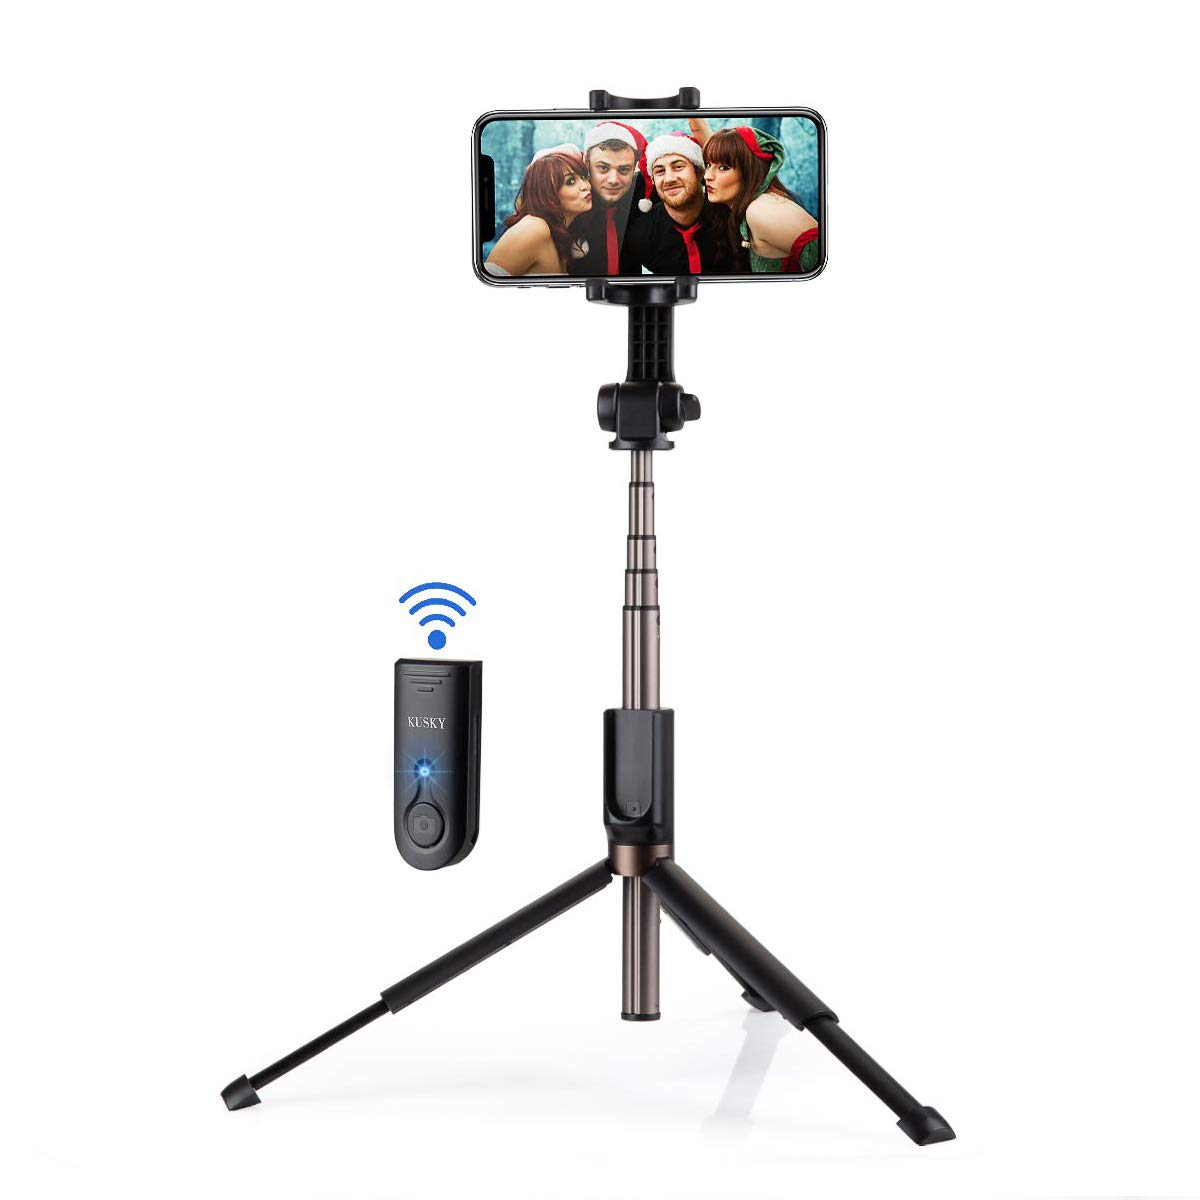 Selfie Stick Bluetooth, KUSKY Super Long Extendable Selfie Stick with Wireless Remote and Tripod for iPhone Xs MAX/XR/XS/X/iPhone 8/8 Plus/iPhone 6/Galaxy S9/S9 Plus/Note 8/S8 Google, Huawei and More